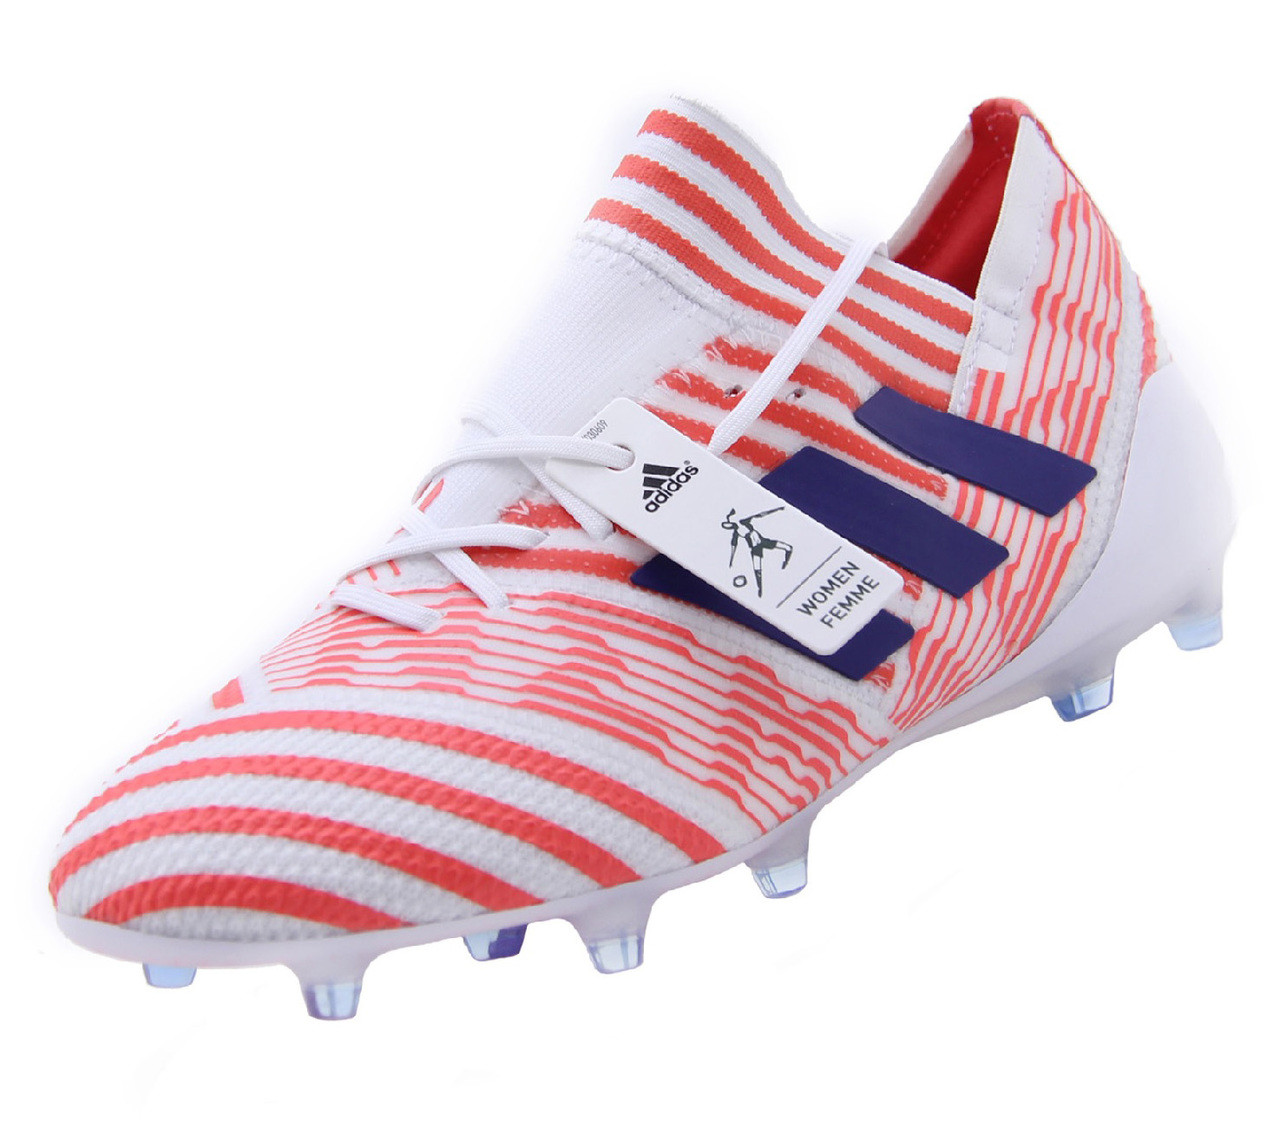 b2cac30fdf9 Adidas Women s Nemeziz 17.1 FG - White Mystery Ink Easy Coral RC (020519) -  ohp soccer